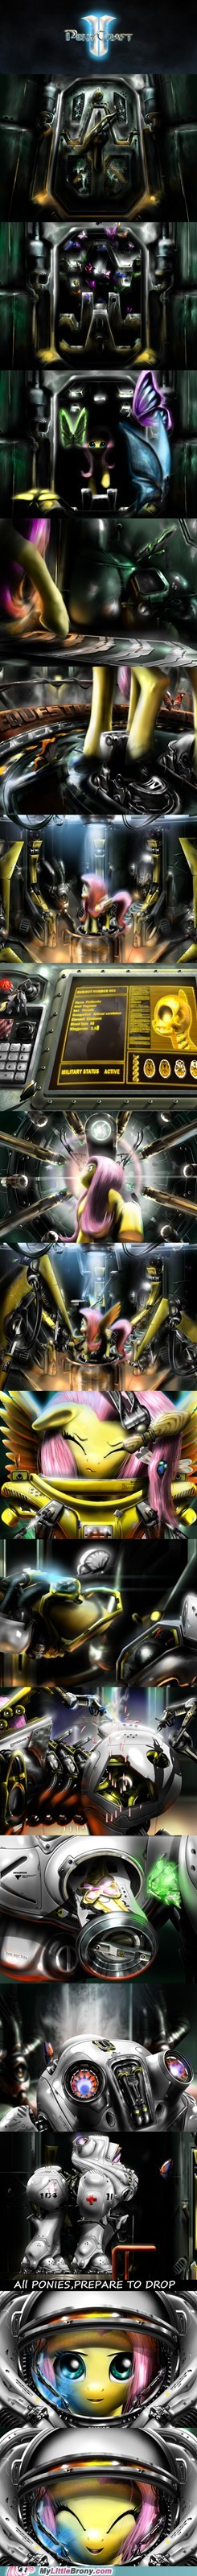 crossover fluttershy ponycraft 2 starcraft 2 video games